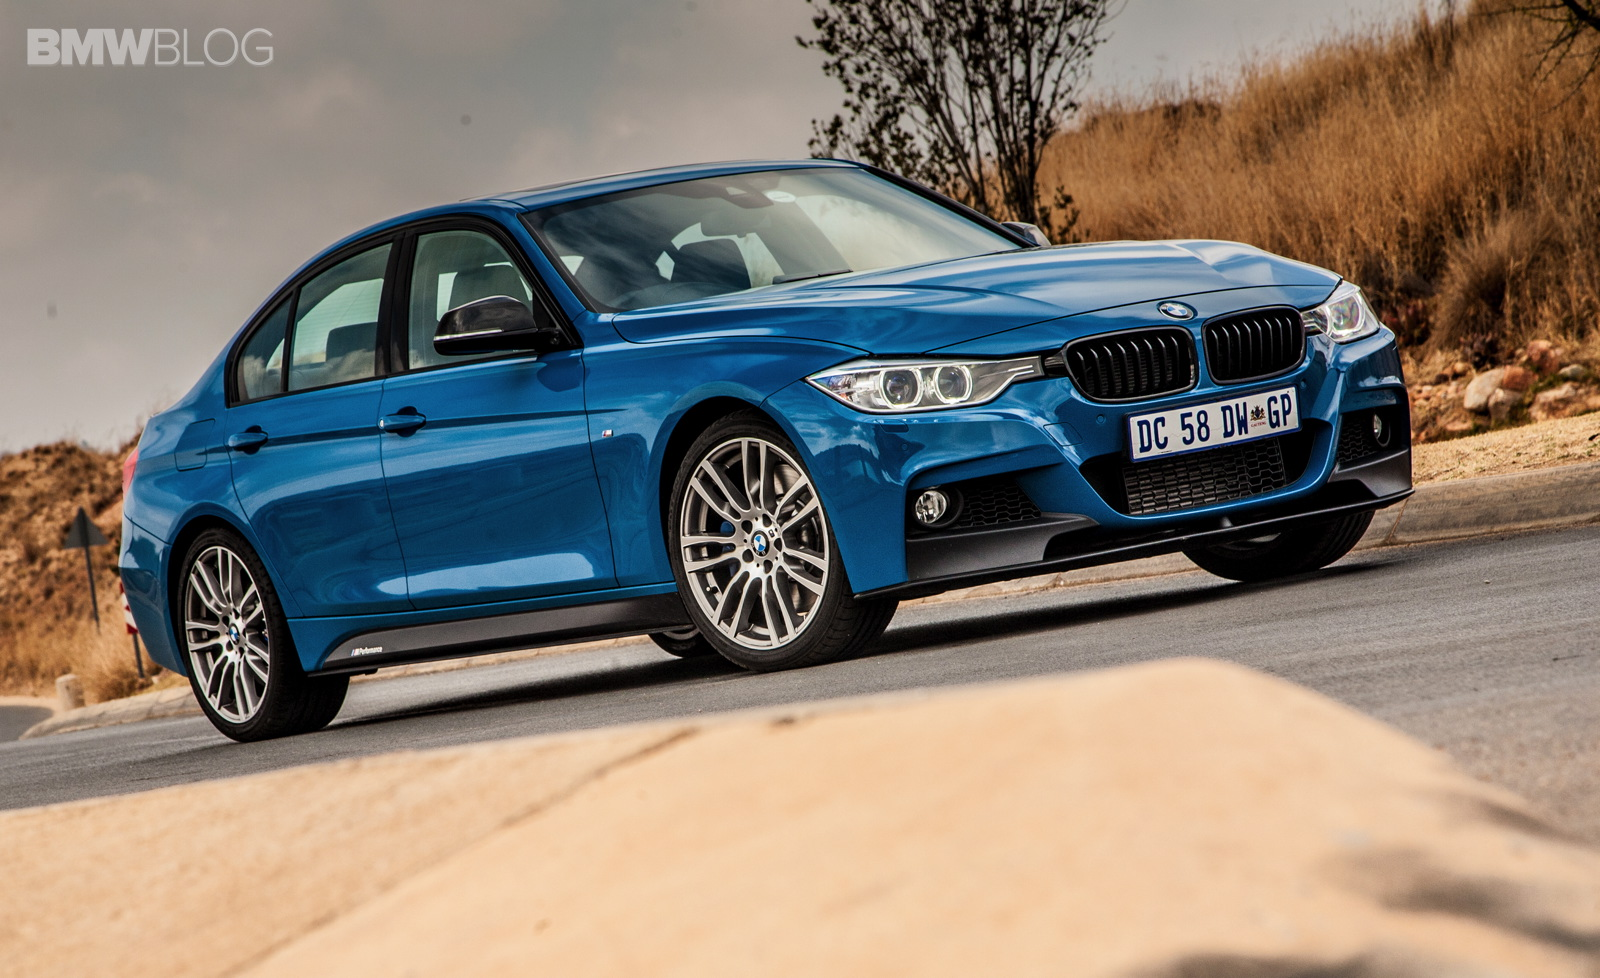 Limited Edition BMW 3 Series Sedan M Performance Edition in Laguna Seca Blue 5